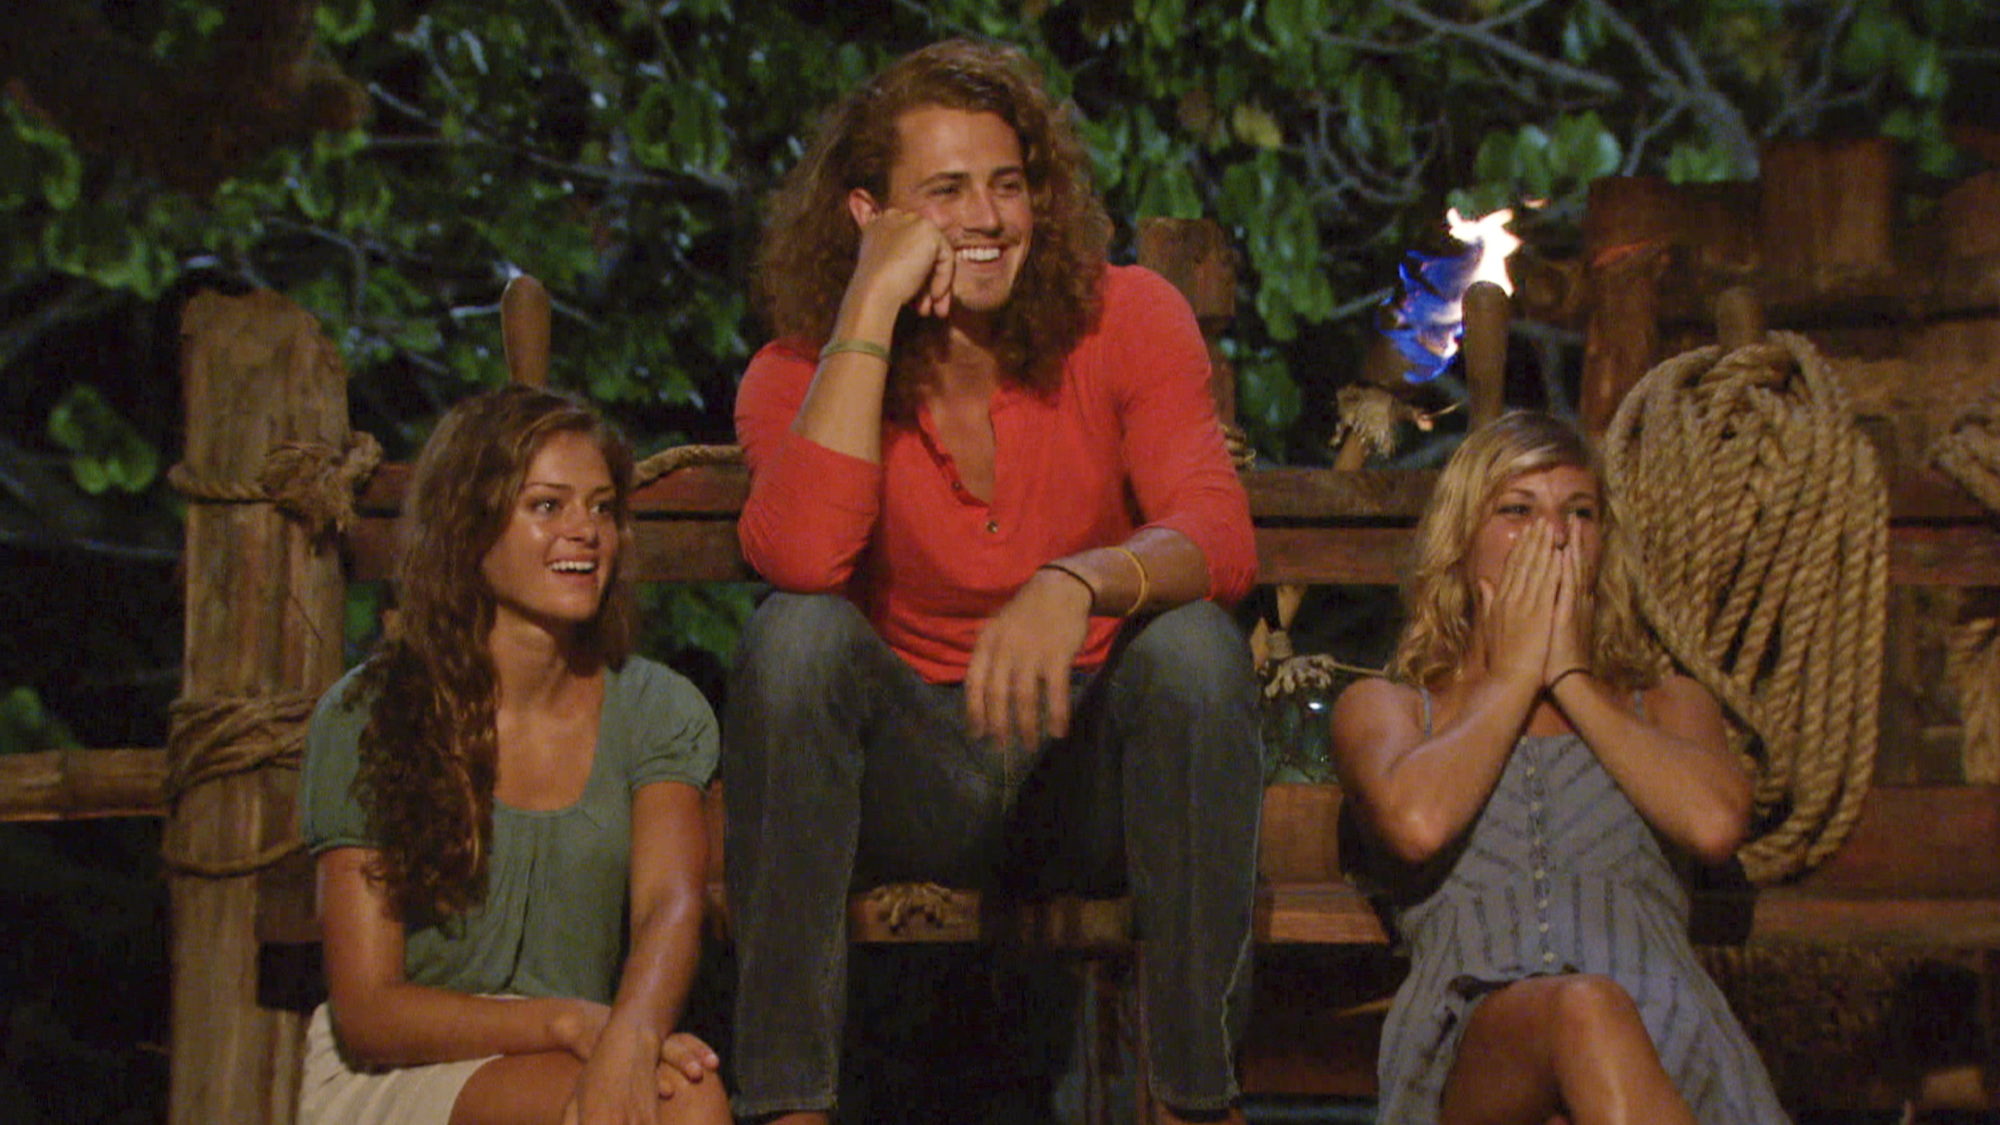 These three come to Tribal Council